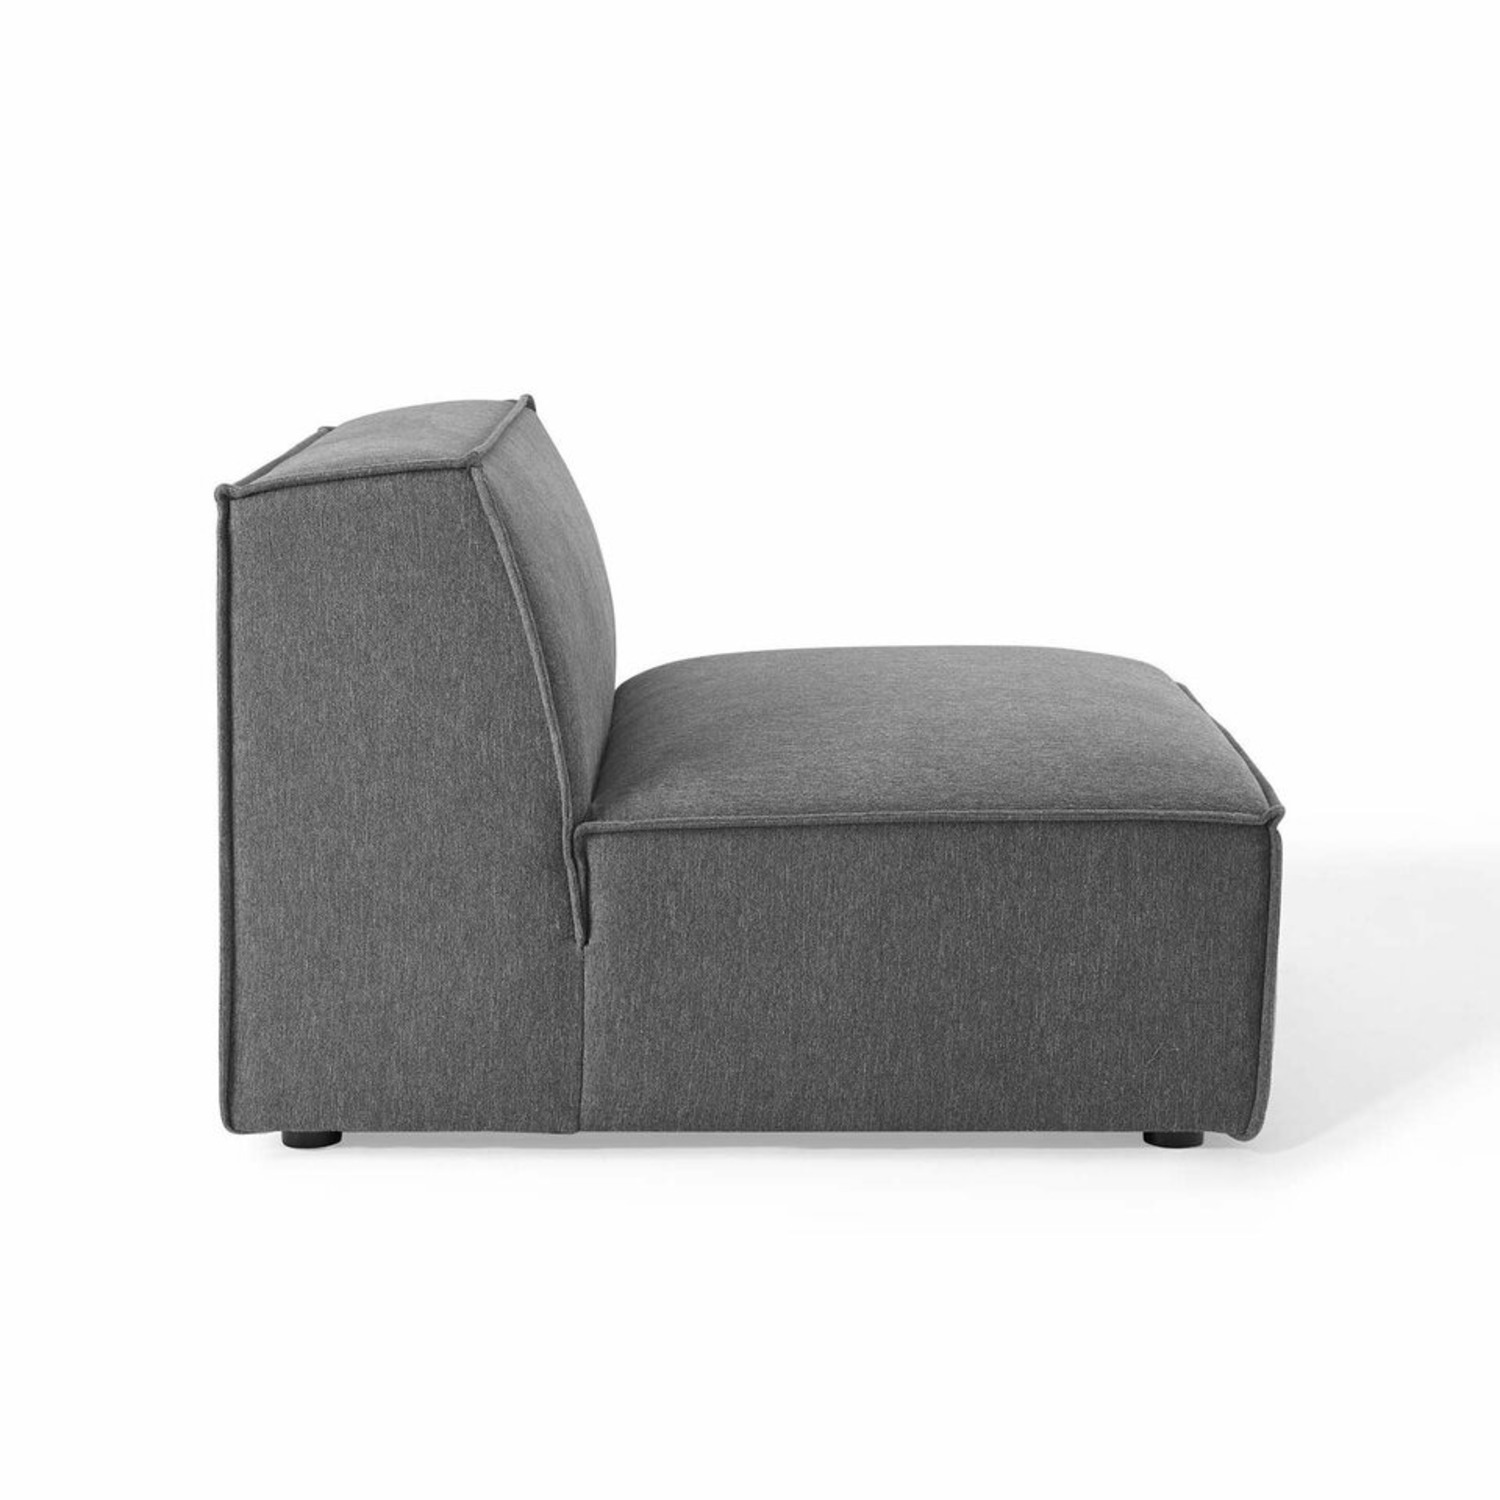 5-Piece Sectional Sofa In CharcoalW/ Piping Detail - image-8